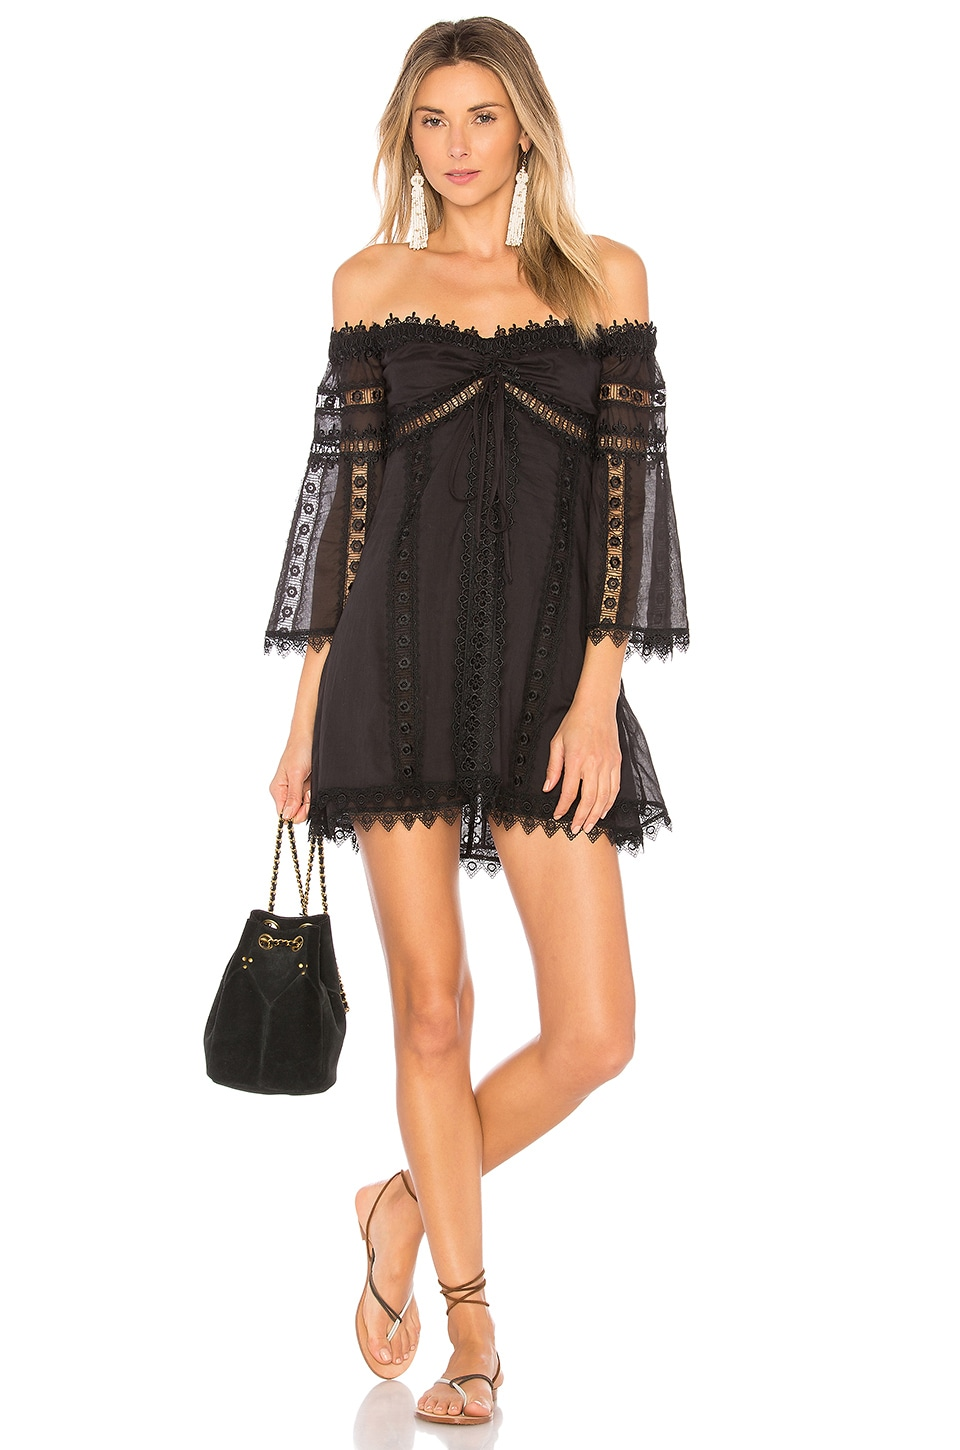 Charo Ruiz Ibiza Campana Dress in Black